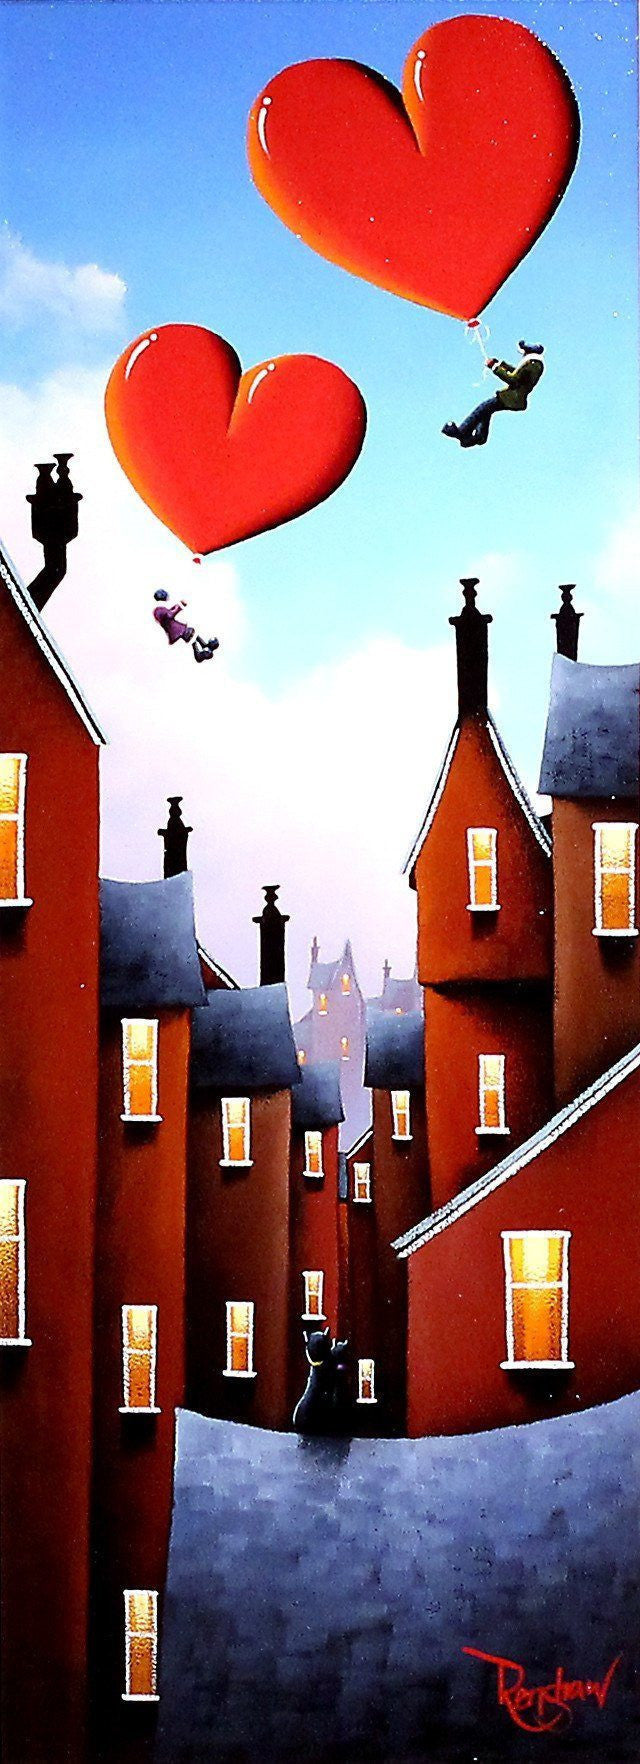 Up, Up & Away! David Renshaw